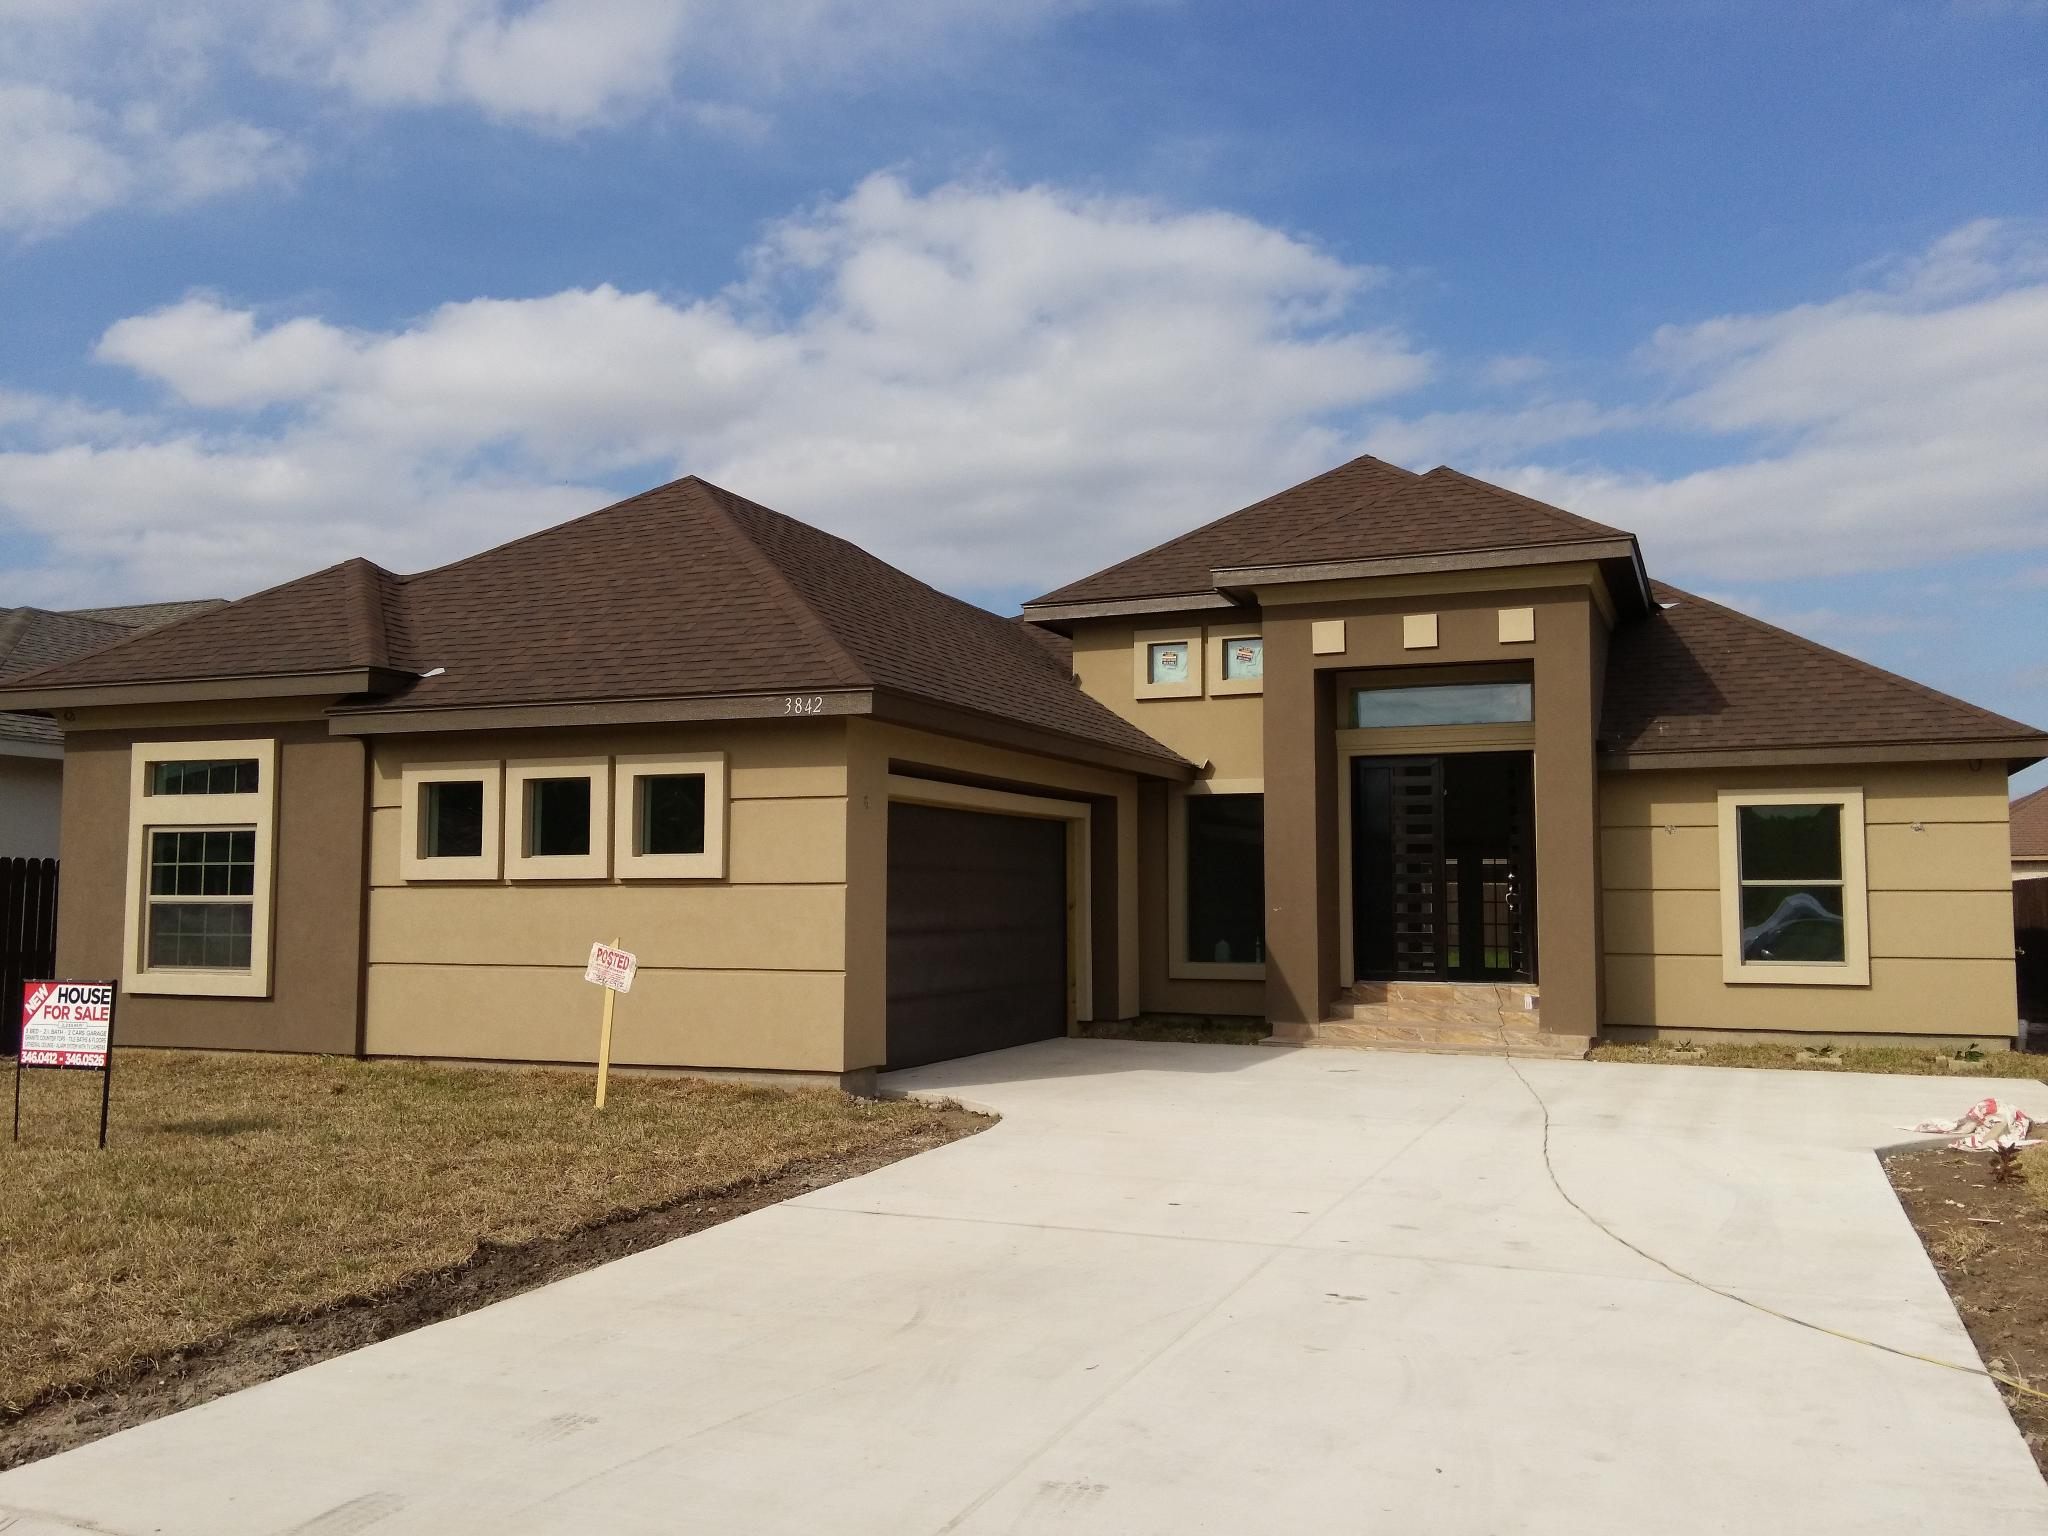 3842 Vivian Dr, Brownsville, TX 78521 | Trulia on houses in brownsville tx, mansion in brownsville tx, apartments in brownsville tx, one night in brownsville tx, weather in brownsville tx,